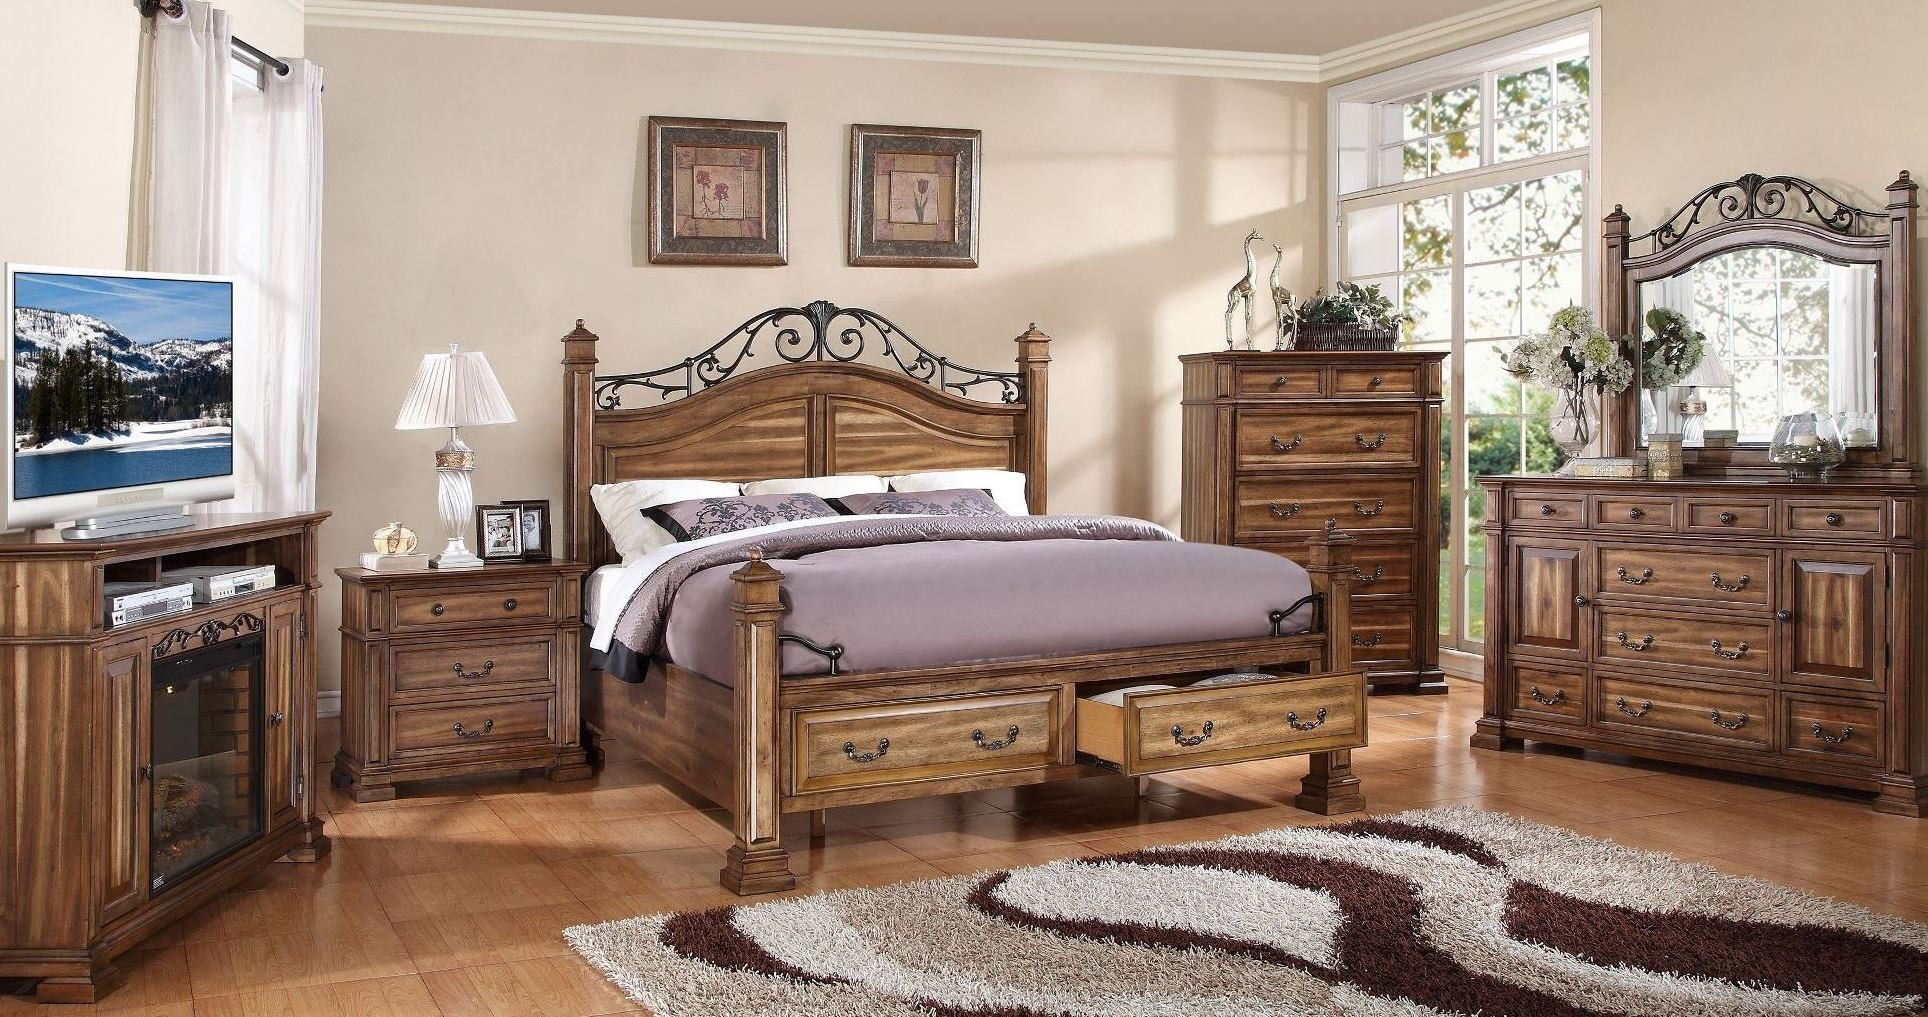 Barclay Rustic Acacia Poster Storage Bedroom Set From Legends Zbcl 7001 7007 7008 Coleman